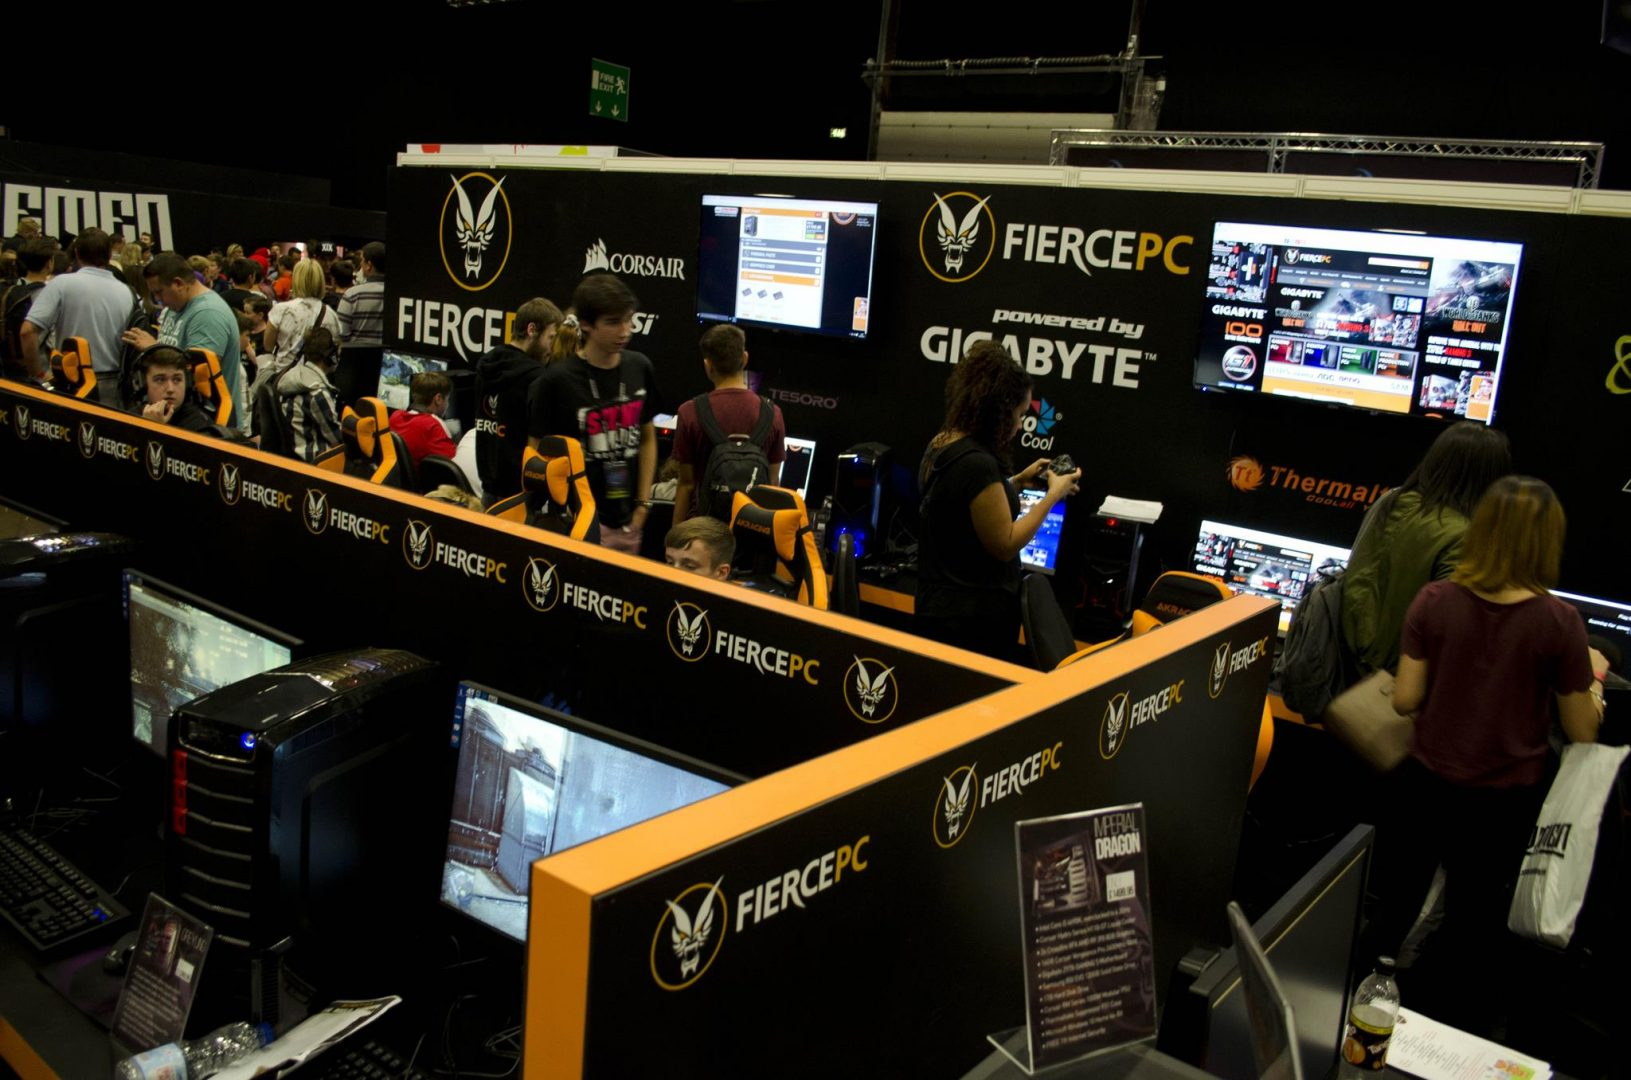 Fierce PC at Multiplay Insomnia Gaming Festival I55_6